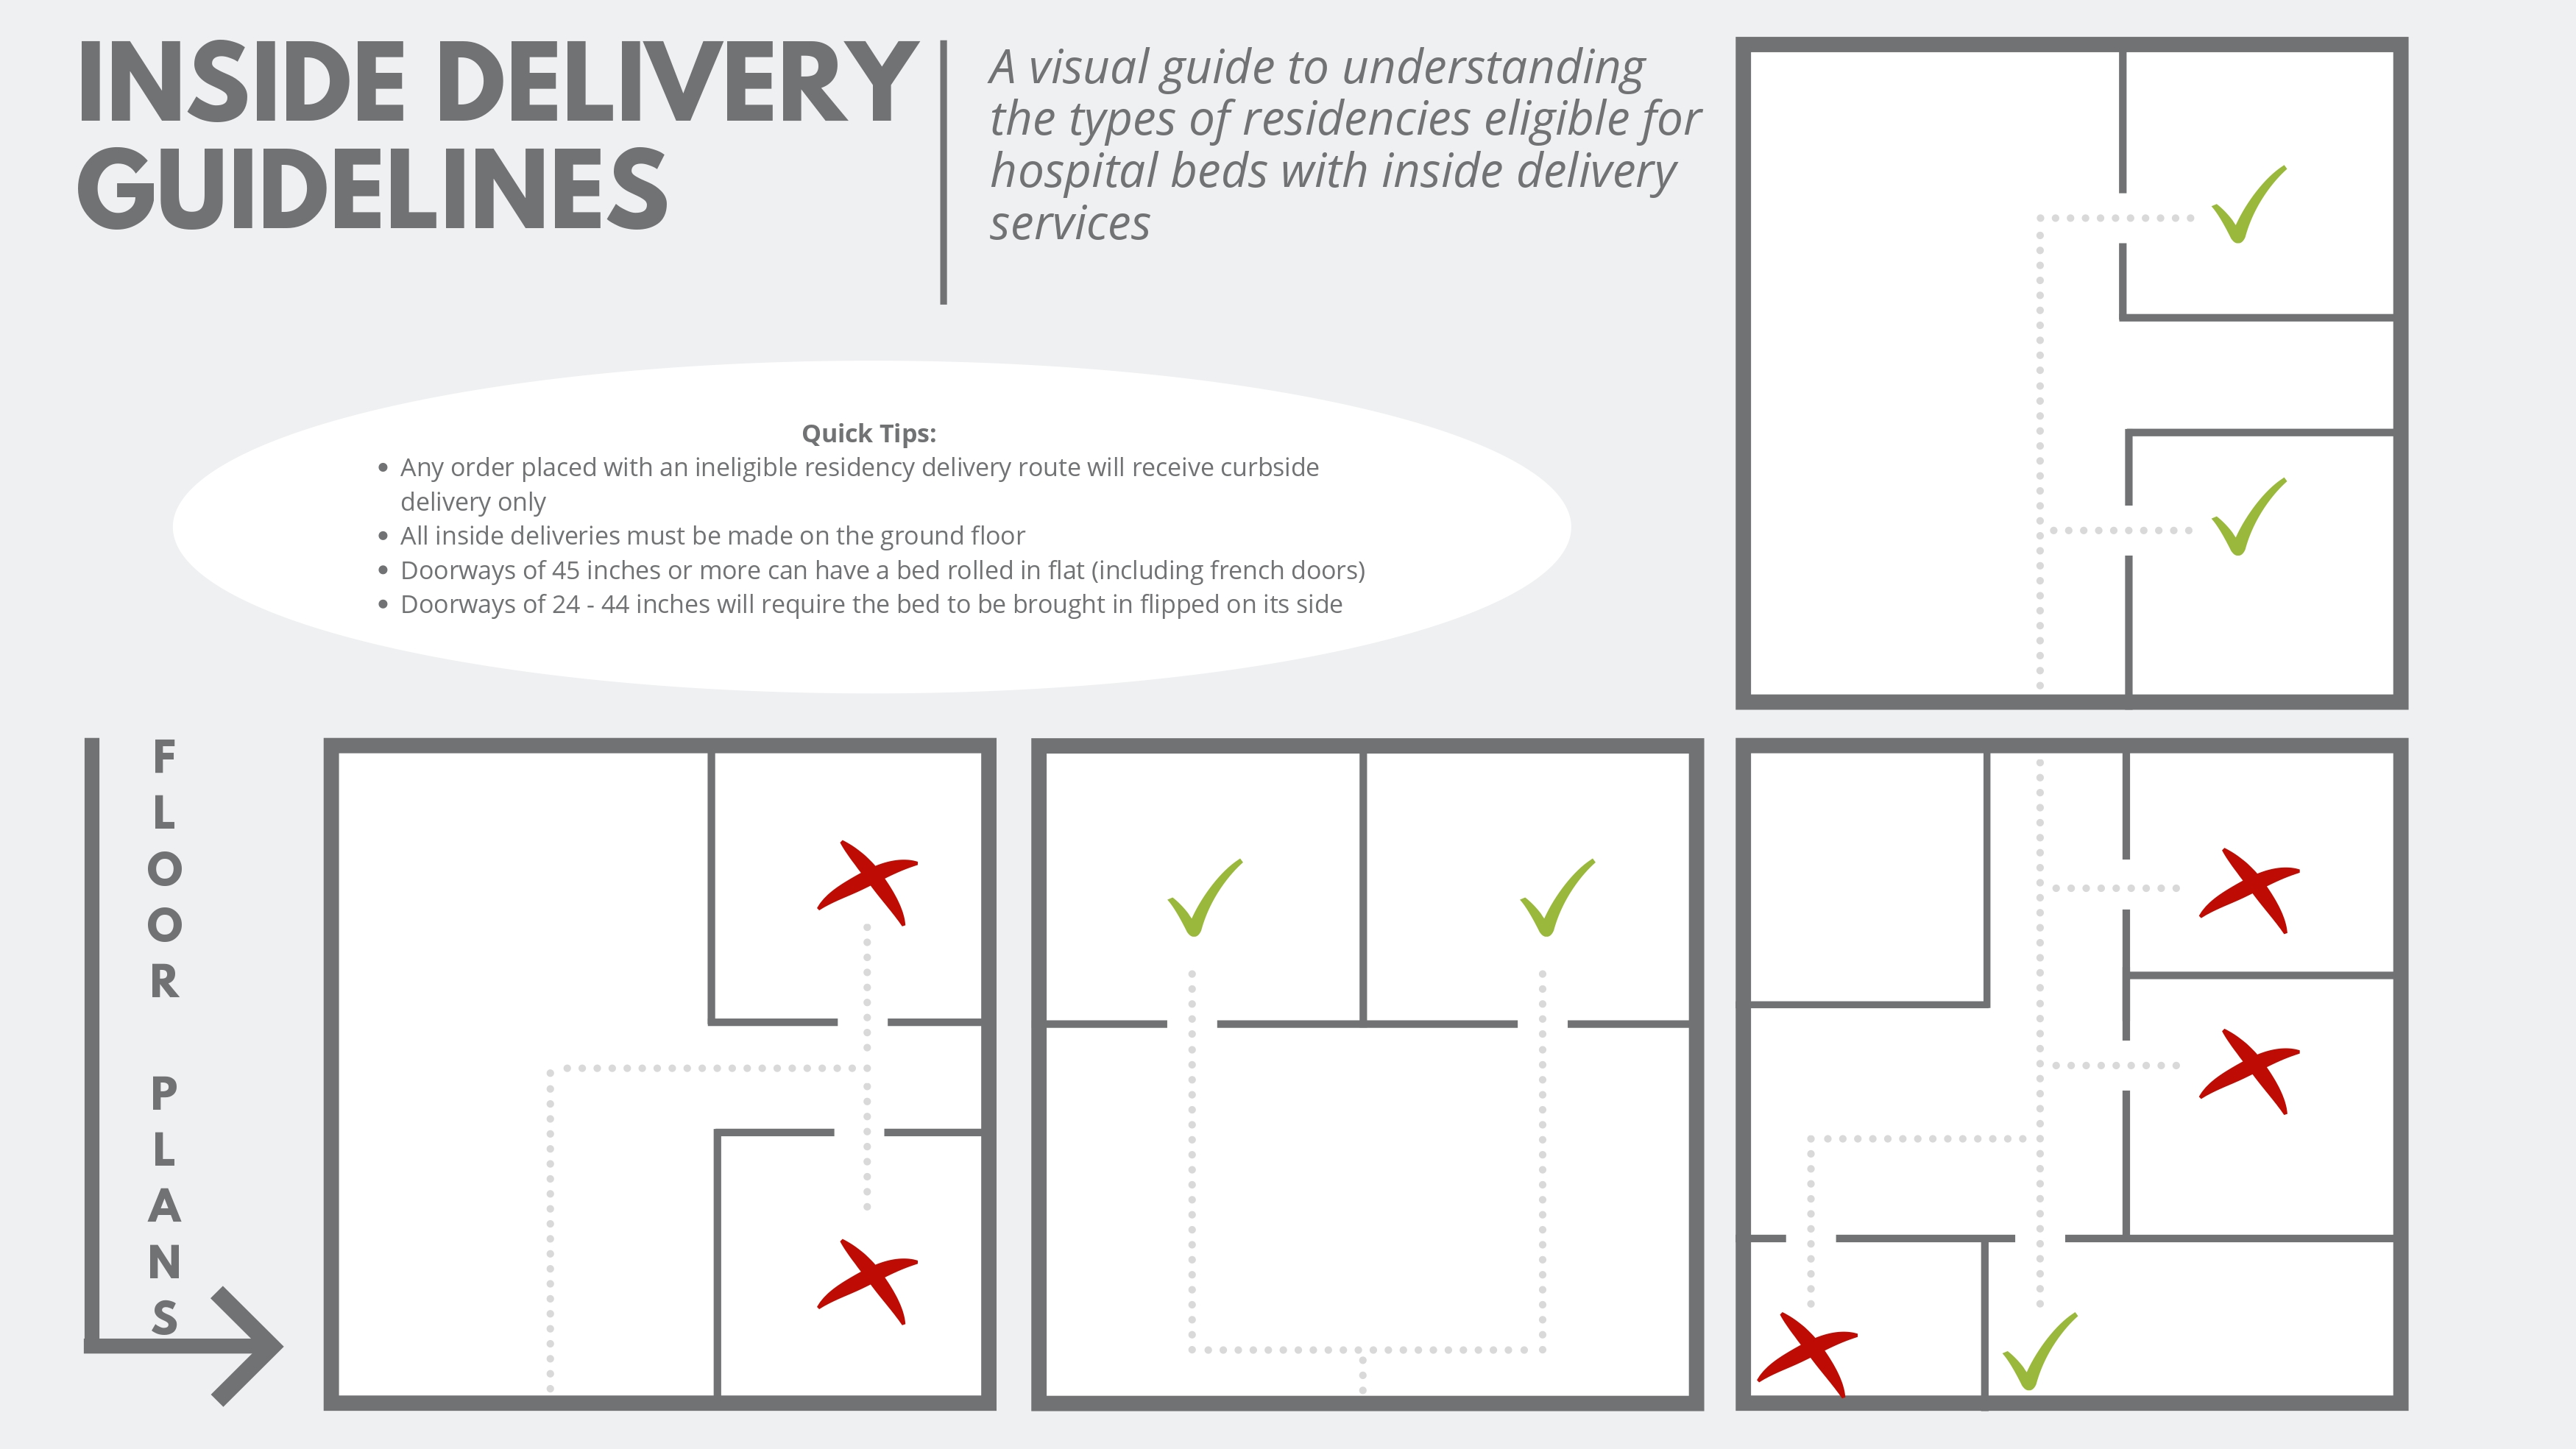 inside-delivery-guidelines-pages-to-jpg-9090001.jpg